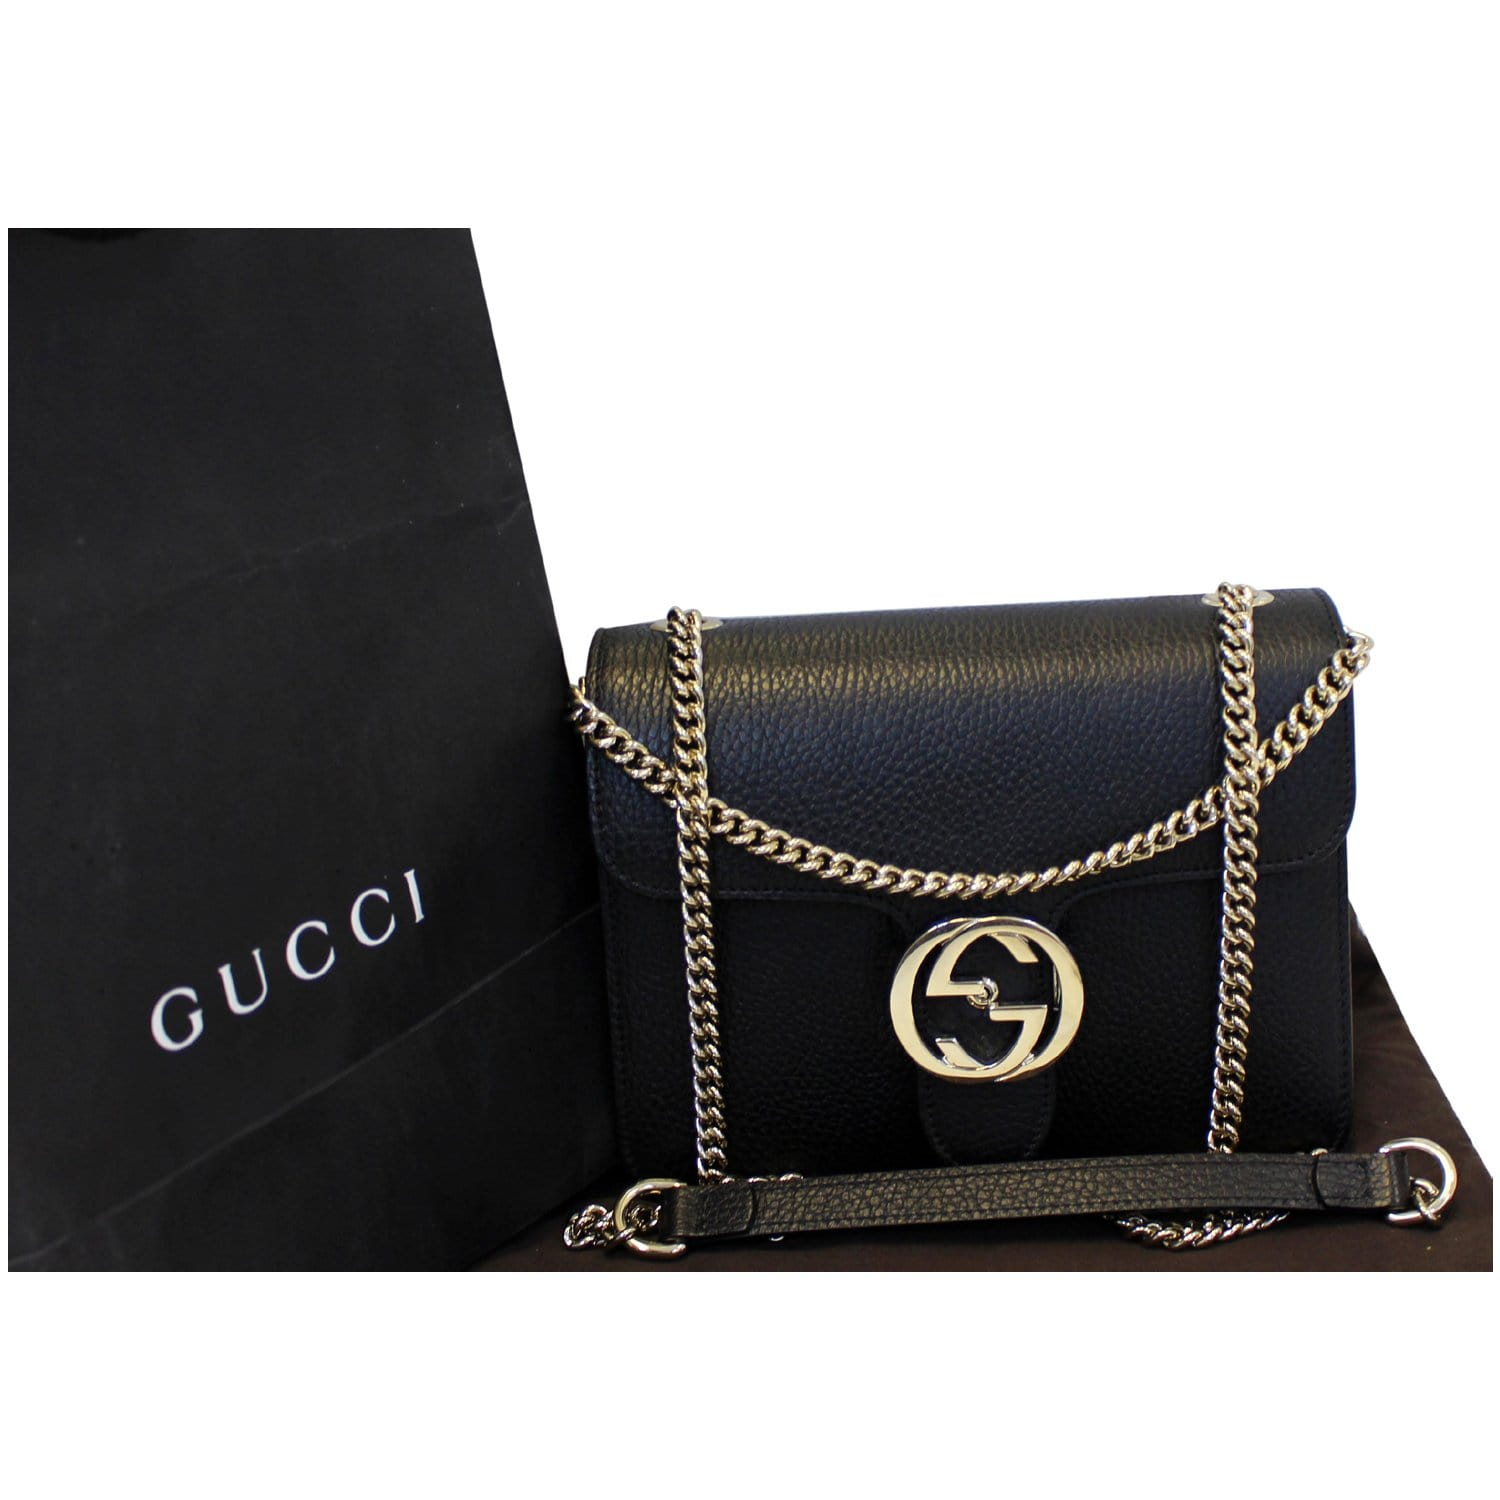 766440a2cf8 GUCCI Interlocking GG Leather Crossbody Bag Black 510304-US